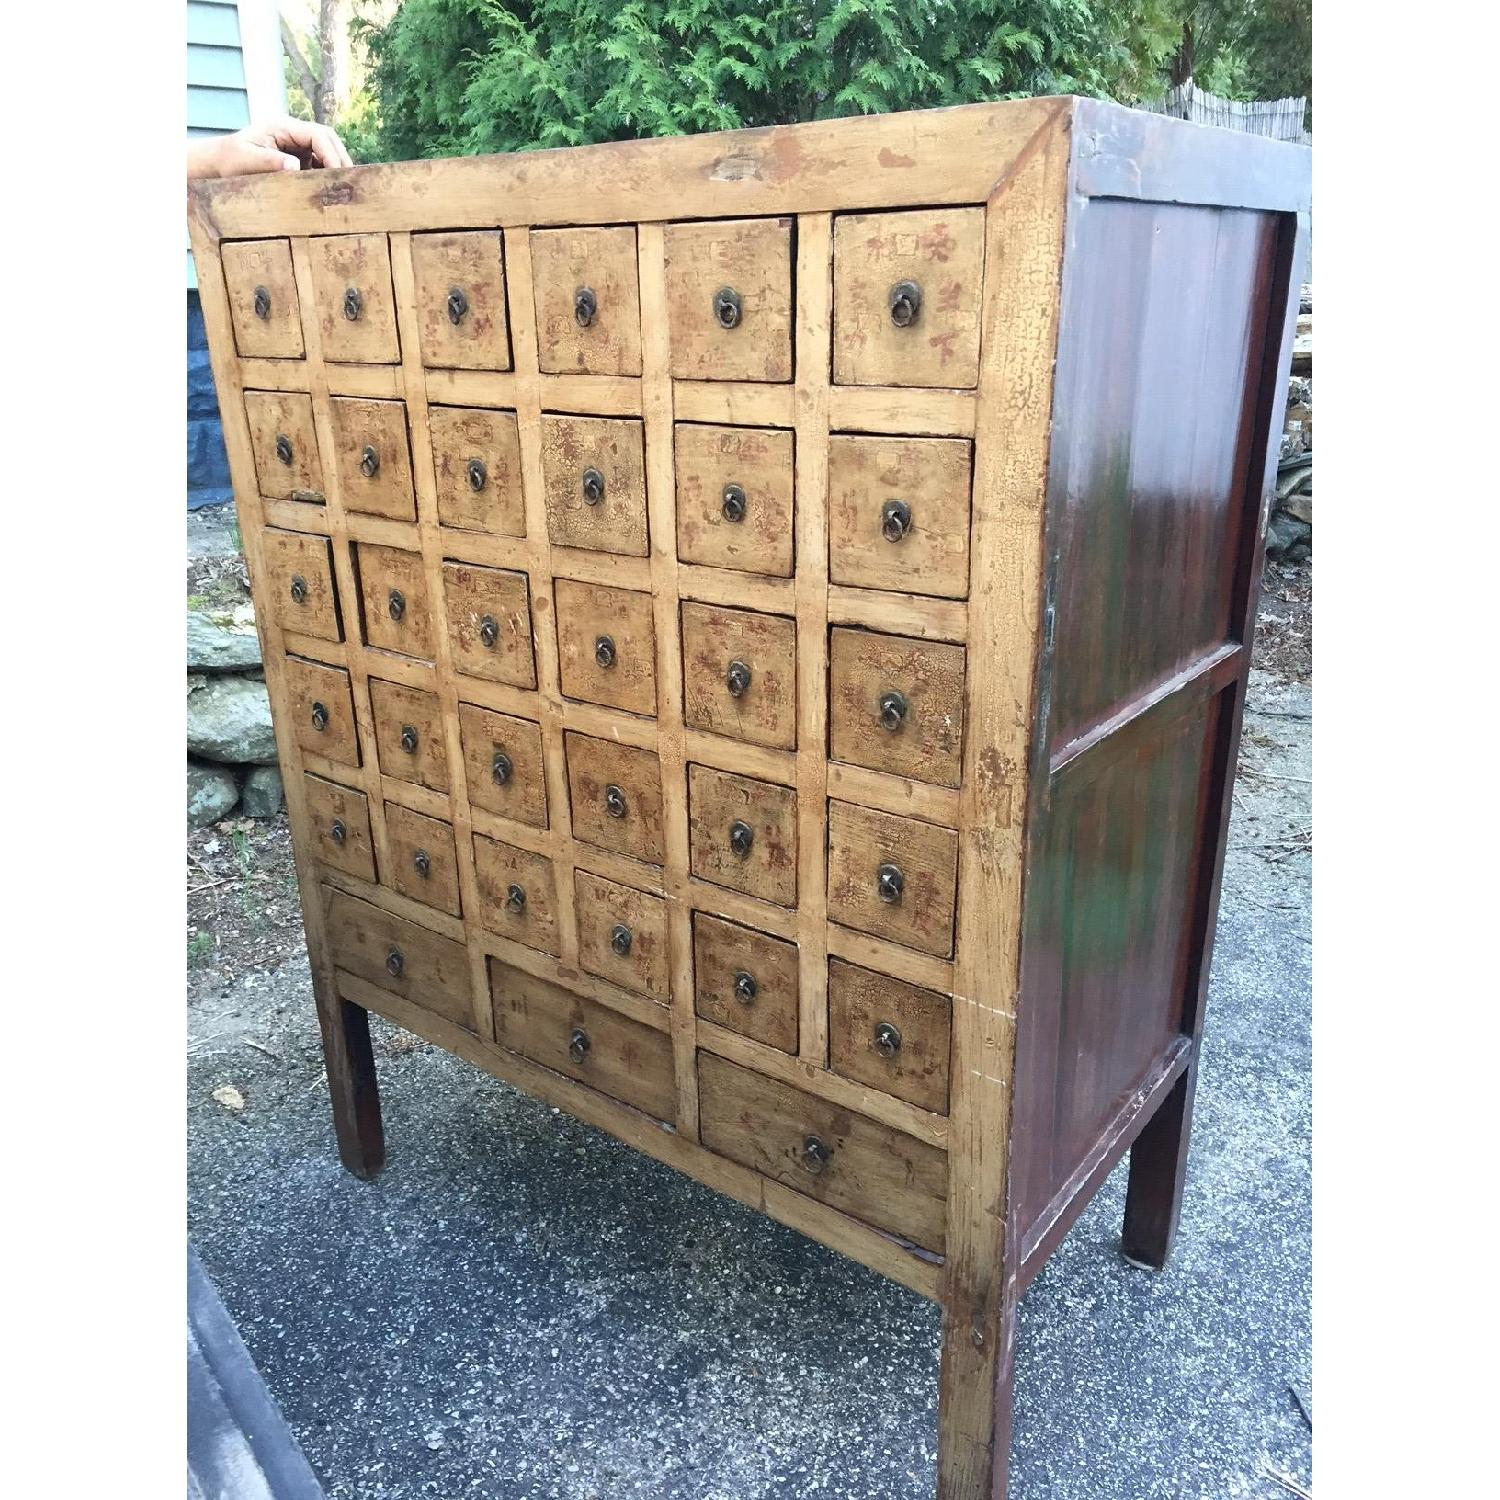 Vintage Chinese Apothocary Chest - image-1